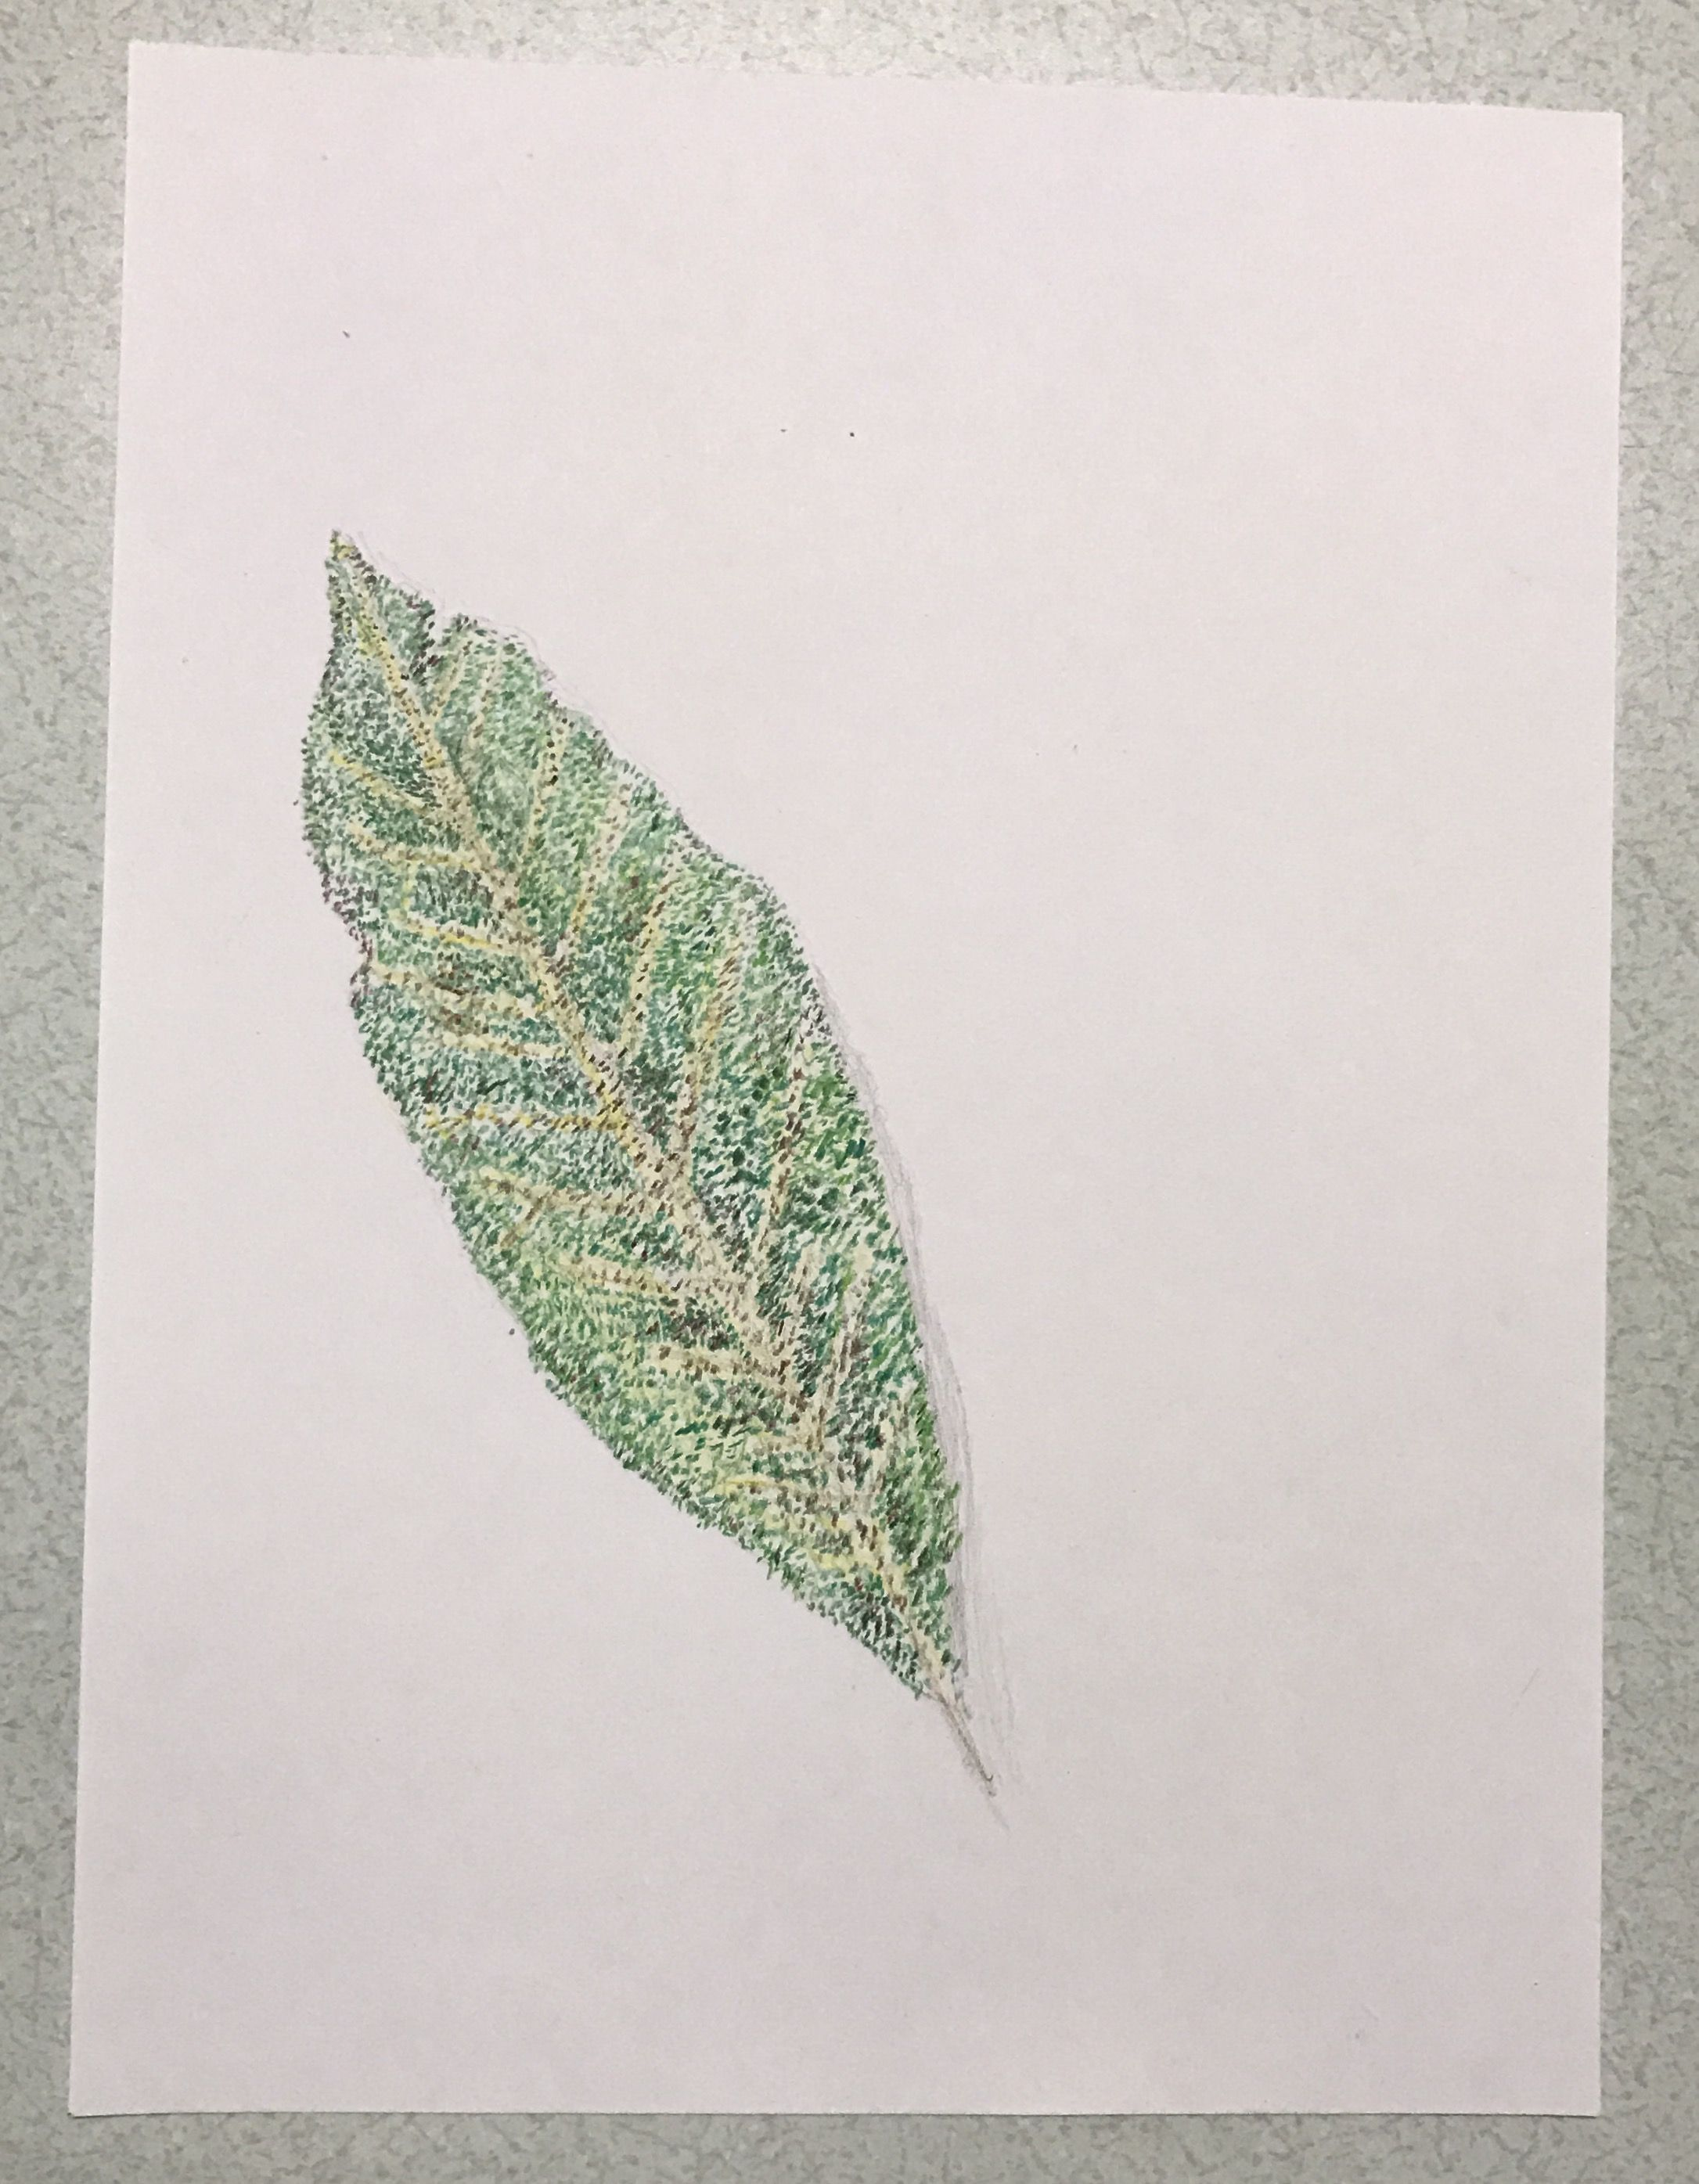 My art assignment was to draw a leaf i chose stippling for my